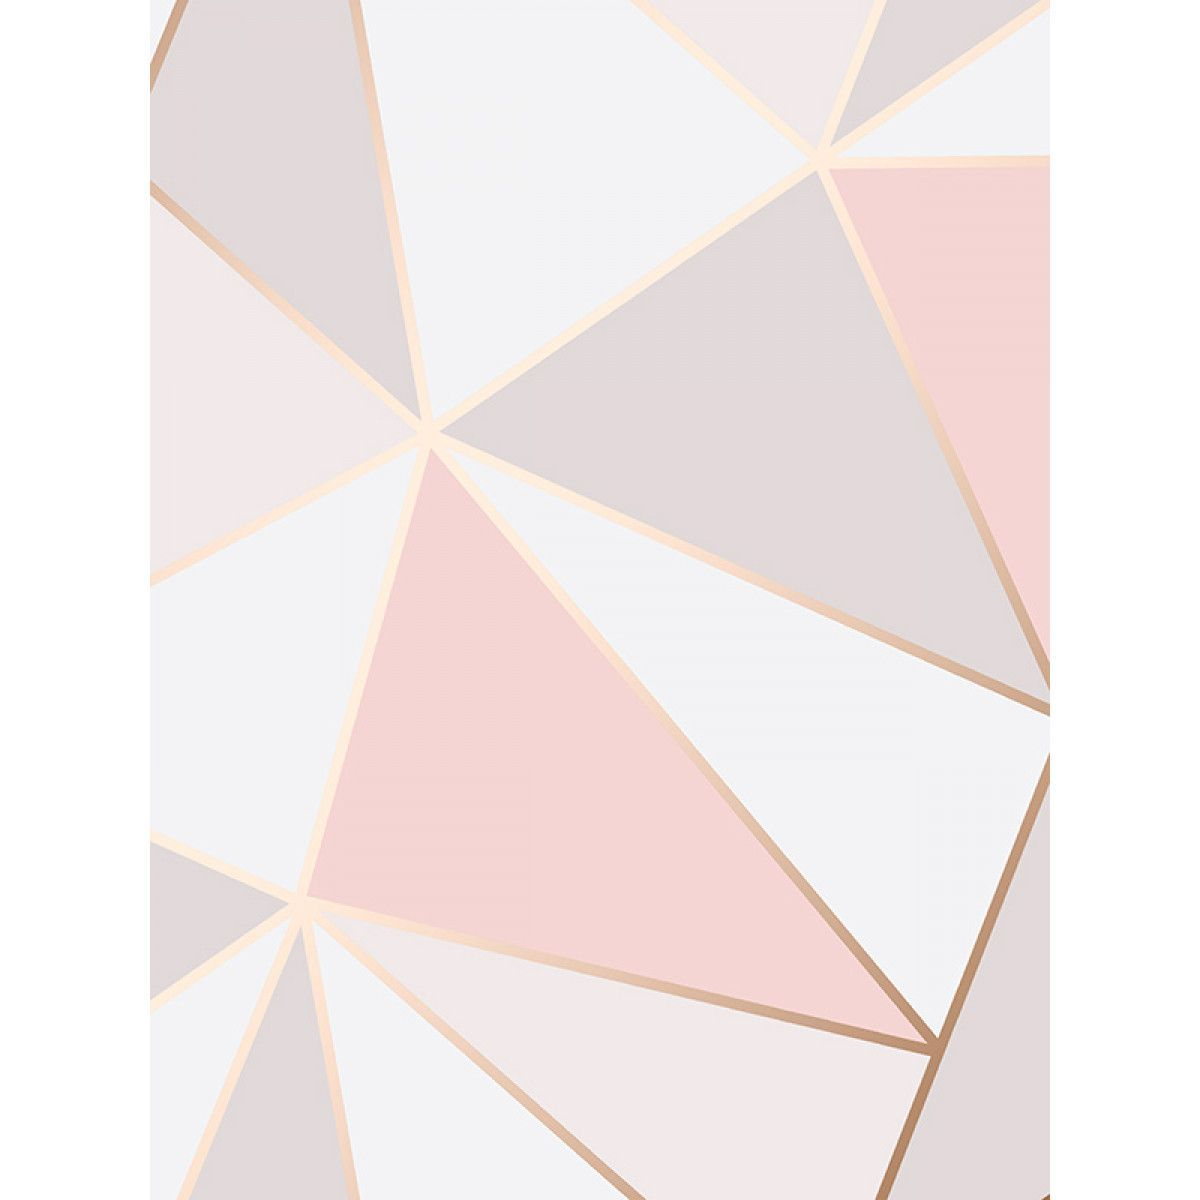 This Apex Geometric Wallpaper In Tones Of Pink White And Grey Features A Contemporary Geom Geometric Wallpaper Rose Gold Geometric Wallpaper Rose Gold Bedroom